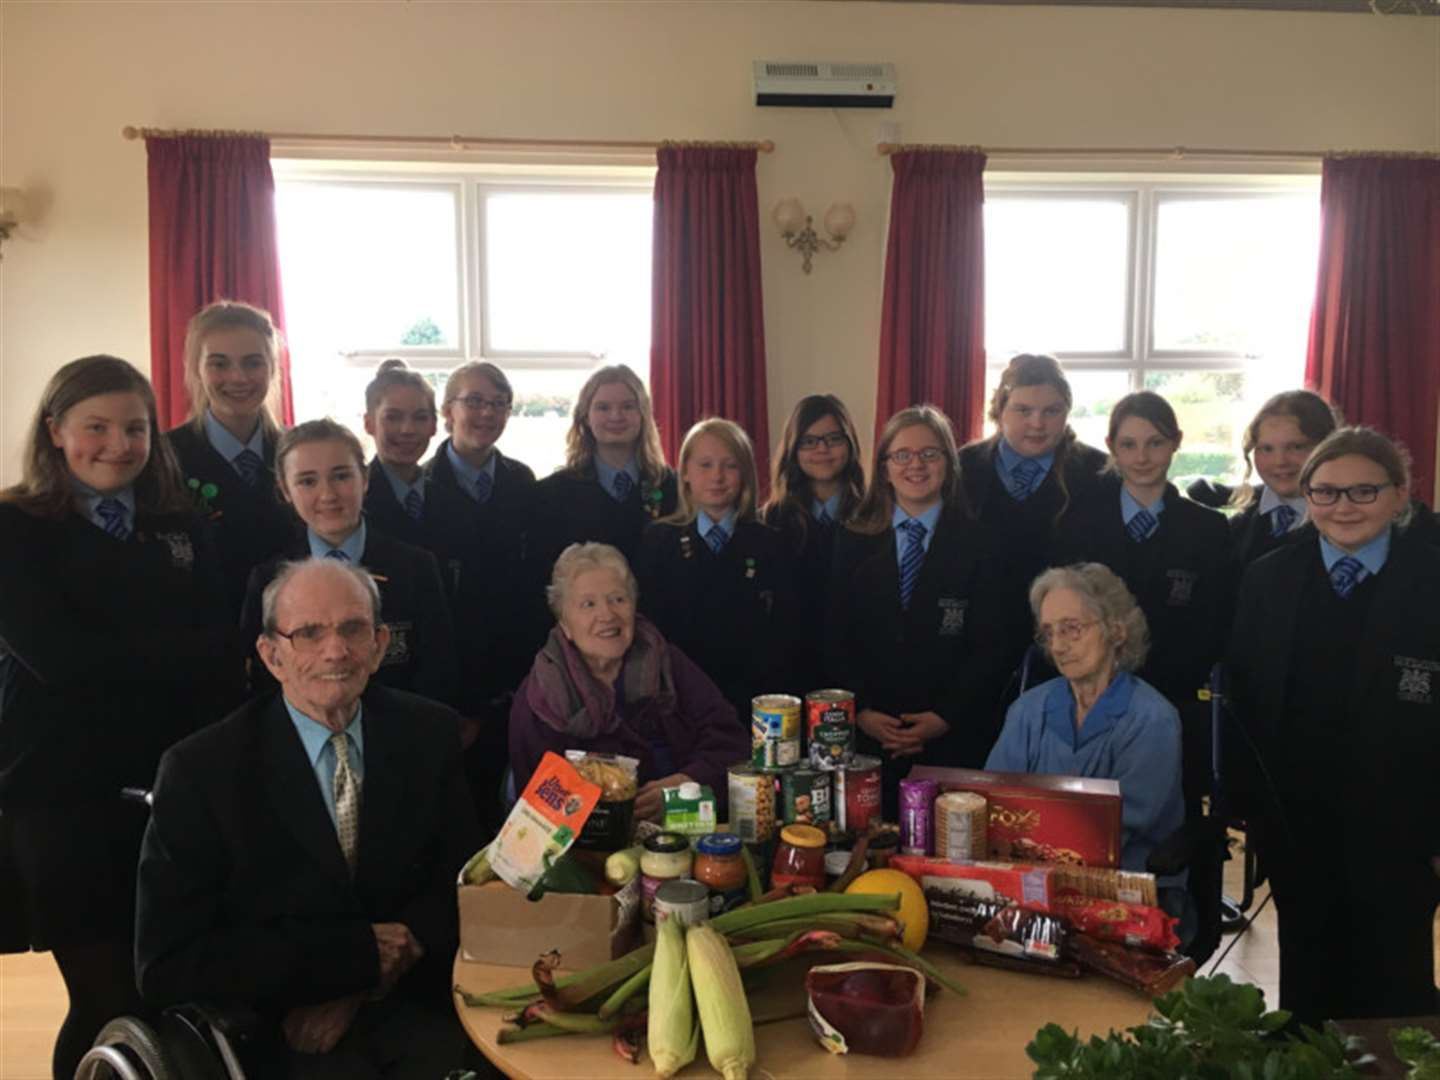 Songs and gifts raise the spirits at Holbeach Hospital